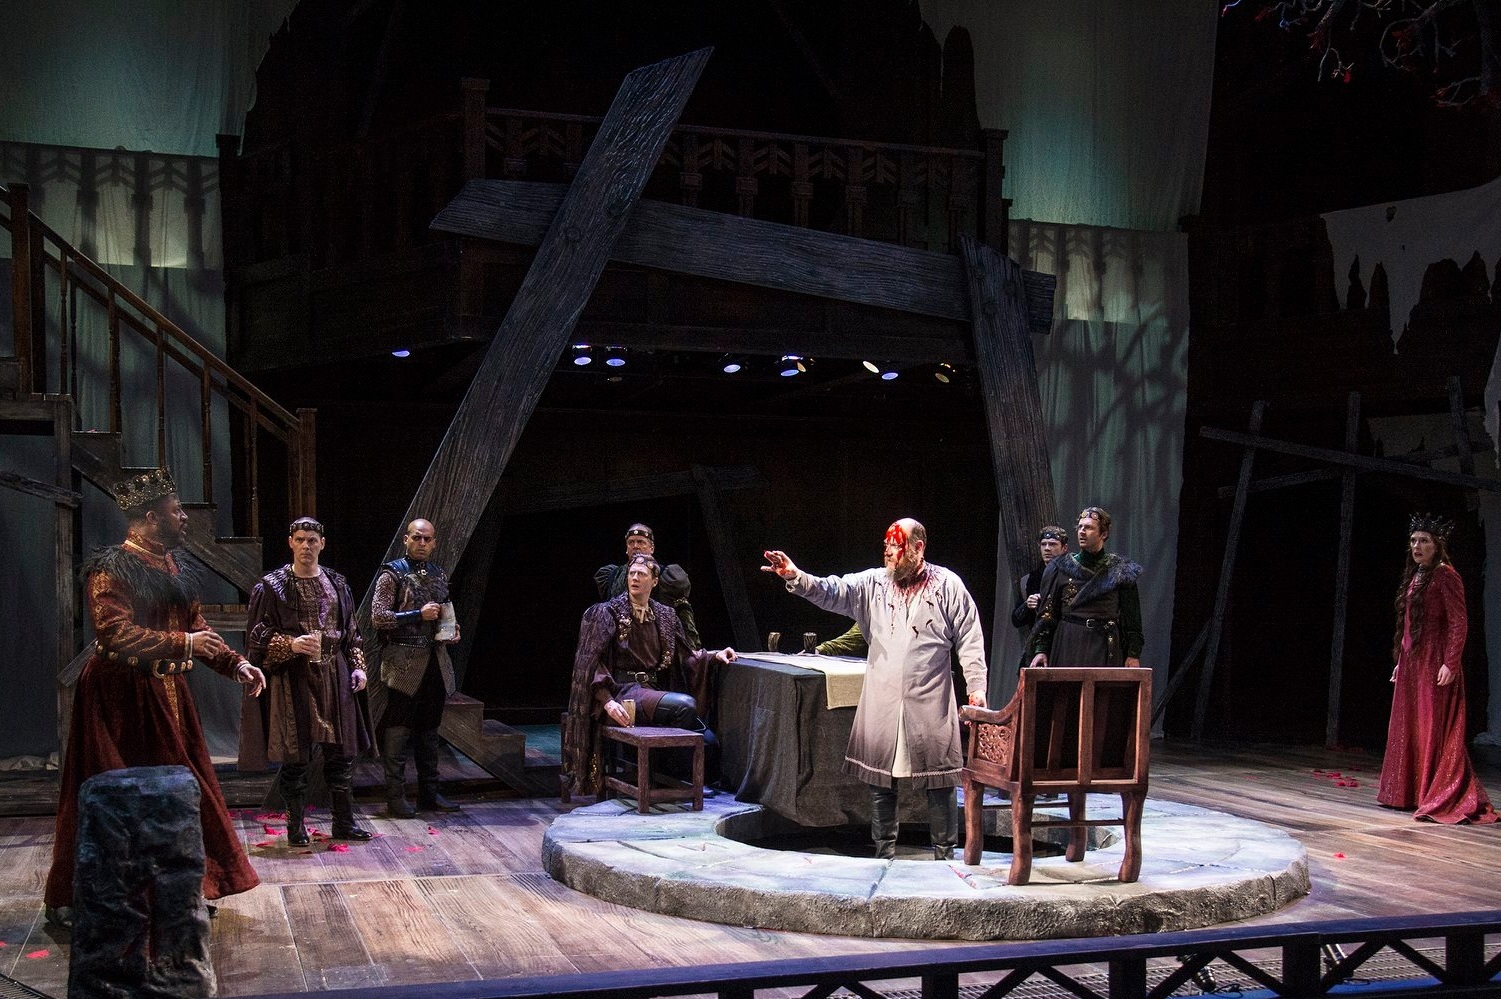 2019  Macbeth  at the Utah Shakespeare Festival, directed by Melissa Rain Anderson.  Photo by Casey Duke